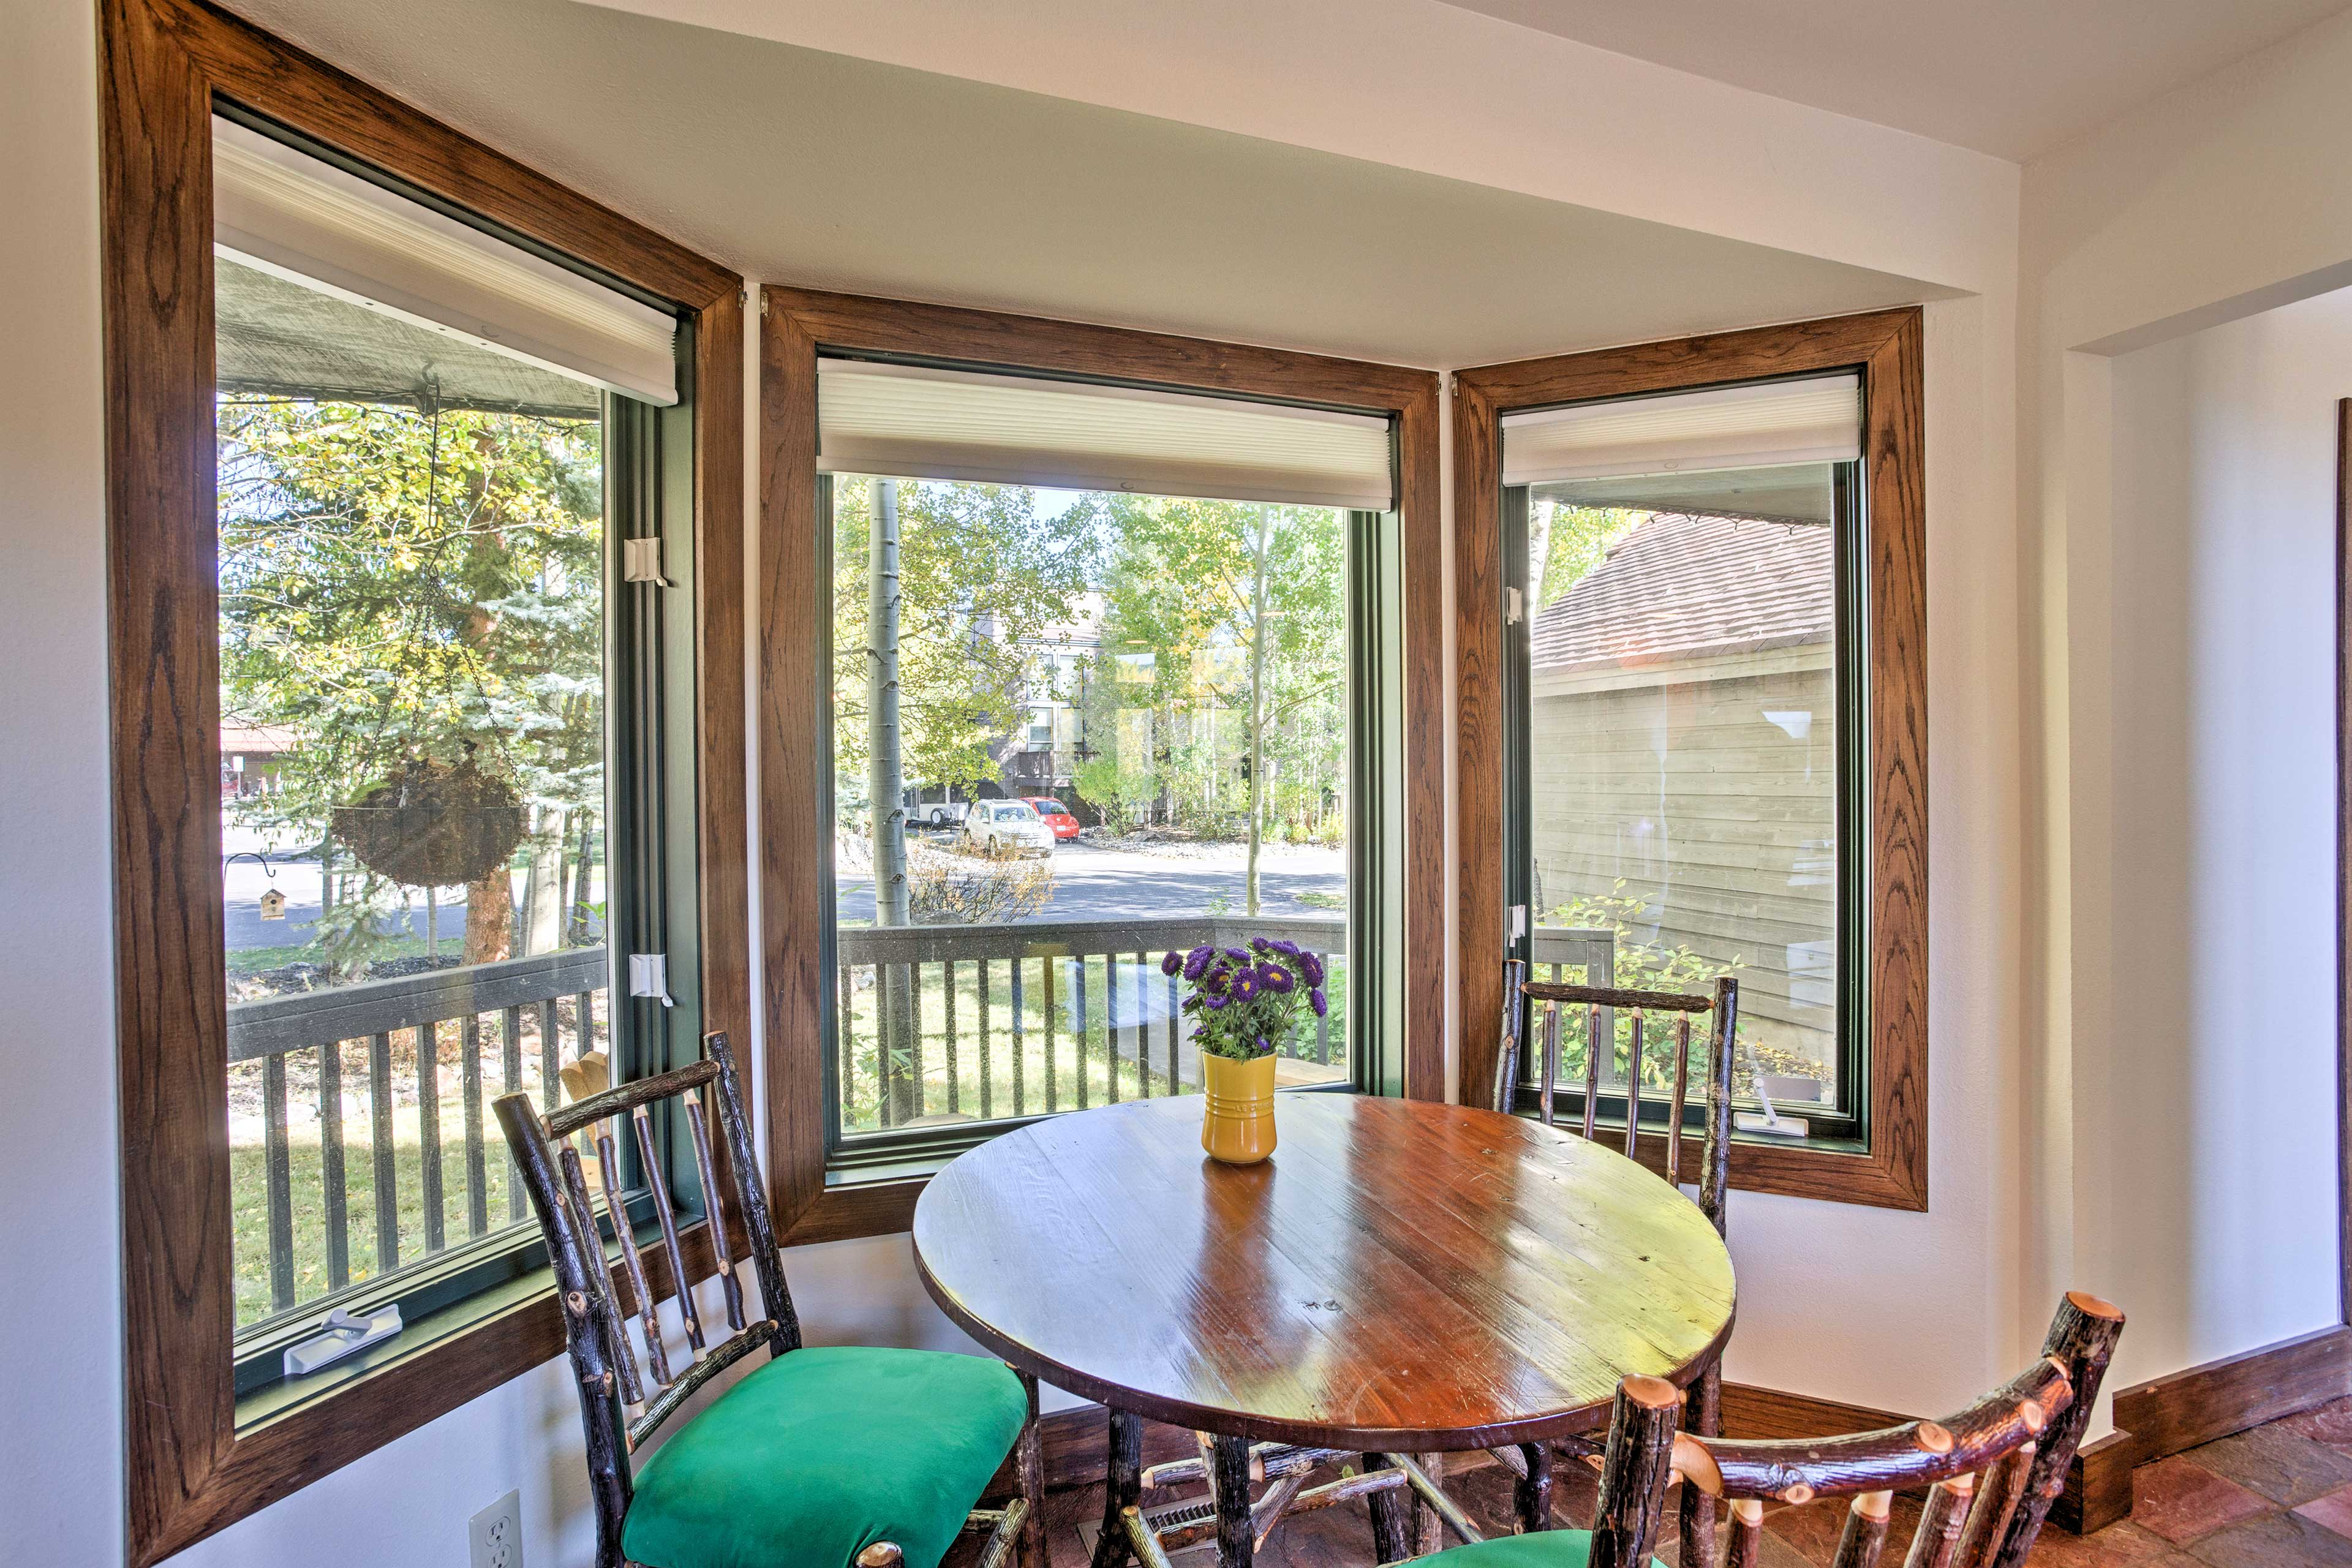 Gather around this charming dining nook to enjoy tasty meals.